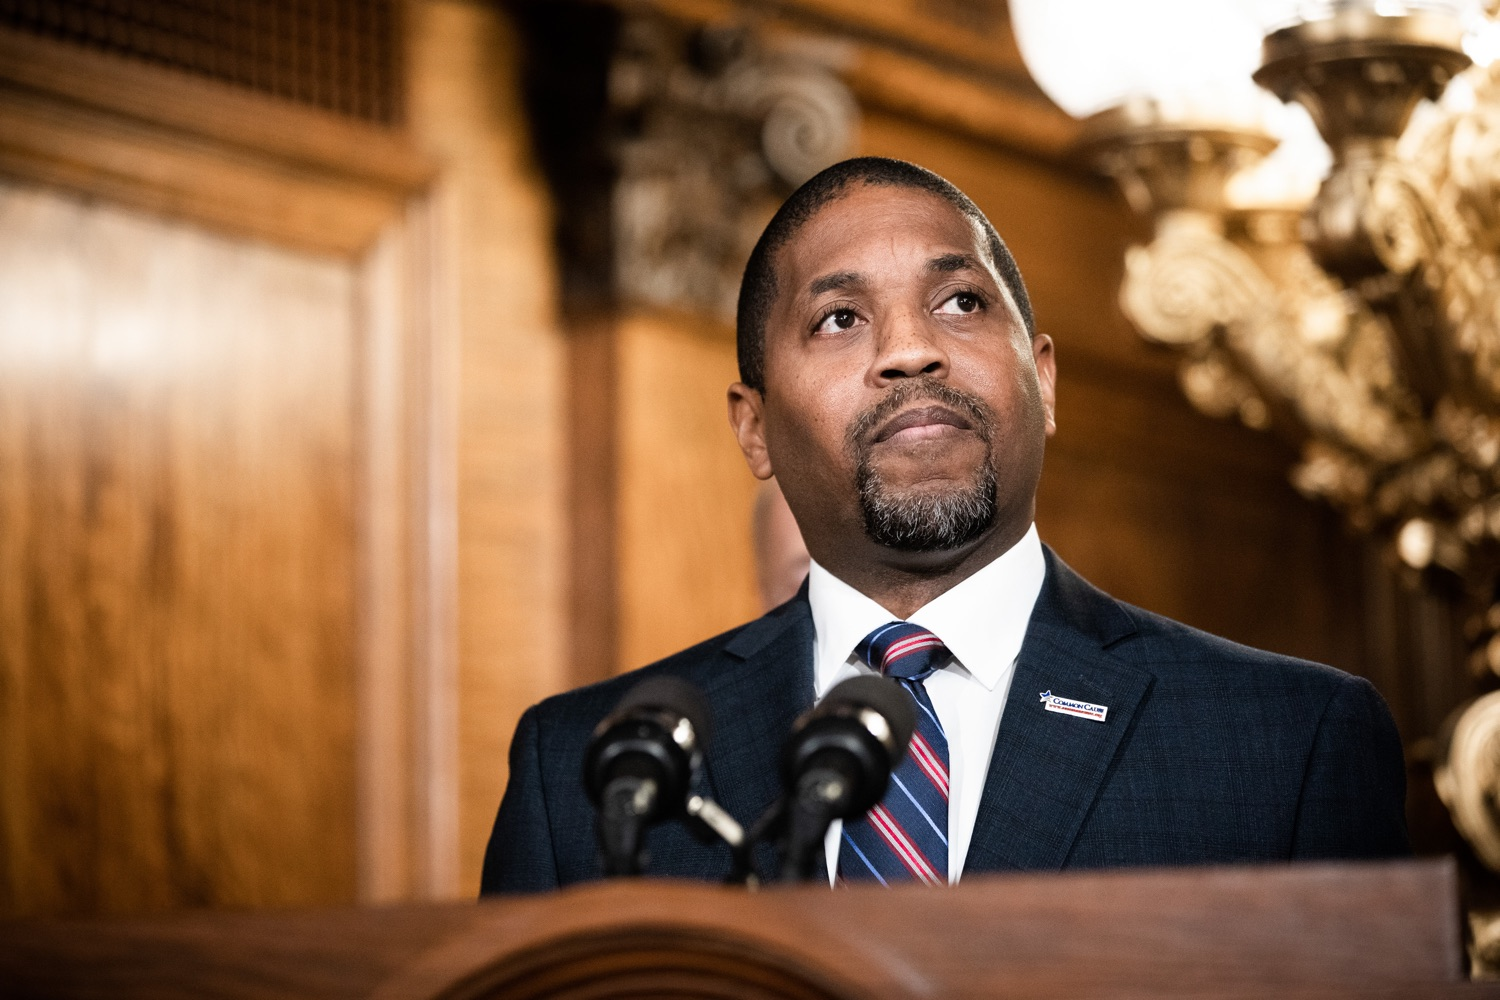 "<a href=""http://filesource.abacast.com/commonwealthofpa/photo/17554_gov_voter_reform_bill_dz_003.jpg"" target=""_blank"">⇣ Download Photo<br></a>Harrisburg, PA  Micah Sims, Executive Director, Common Cause PA speaks at the Election Reform Bill signing. Governor Wolf made voting more convenient and secure by signing Act 77 of 2019, the most significant improvement to Pennsylvanias elections in more than 80 years. The bipartisan compromise legislation takes effect for the April 2020 primary election and makes Pennsylvania a national leader with voter-friendly election reforms."